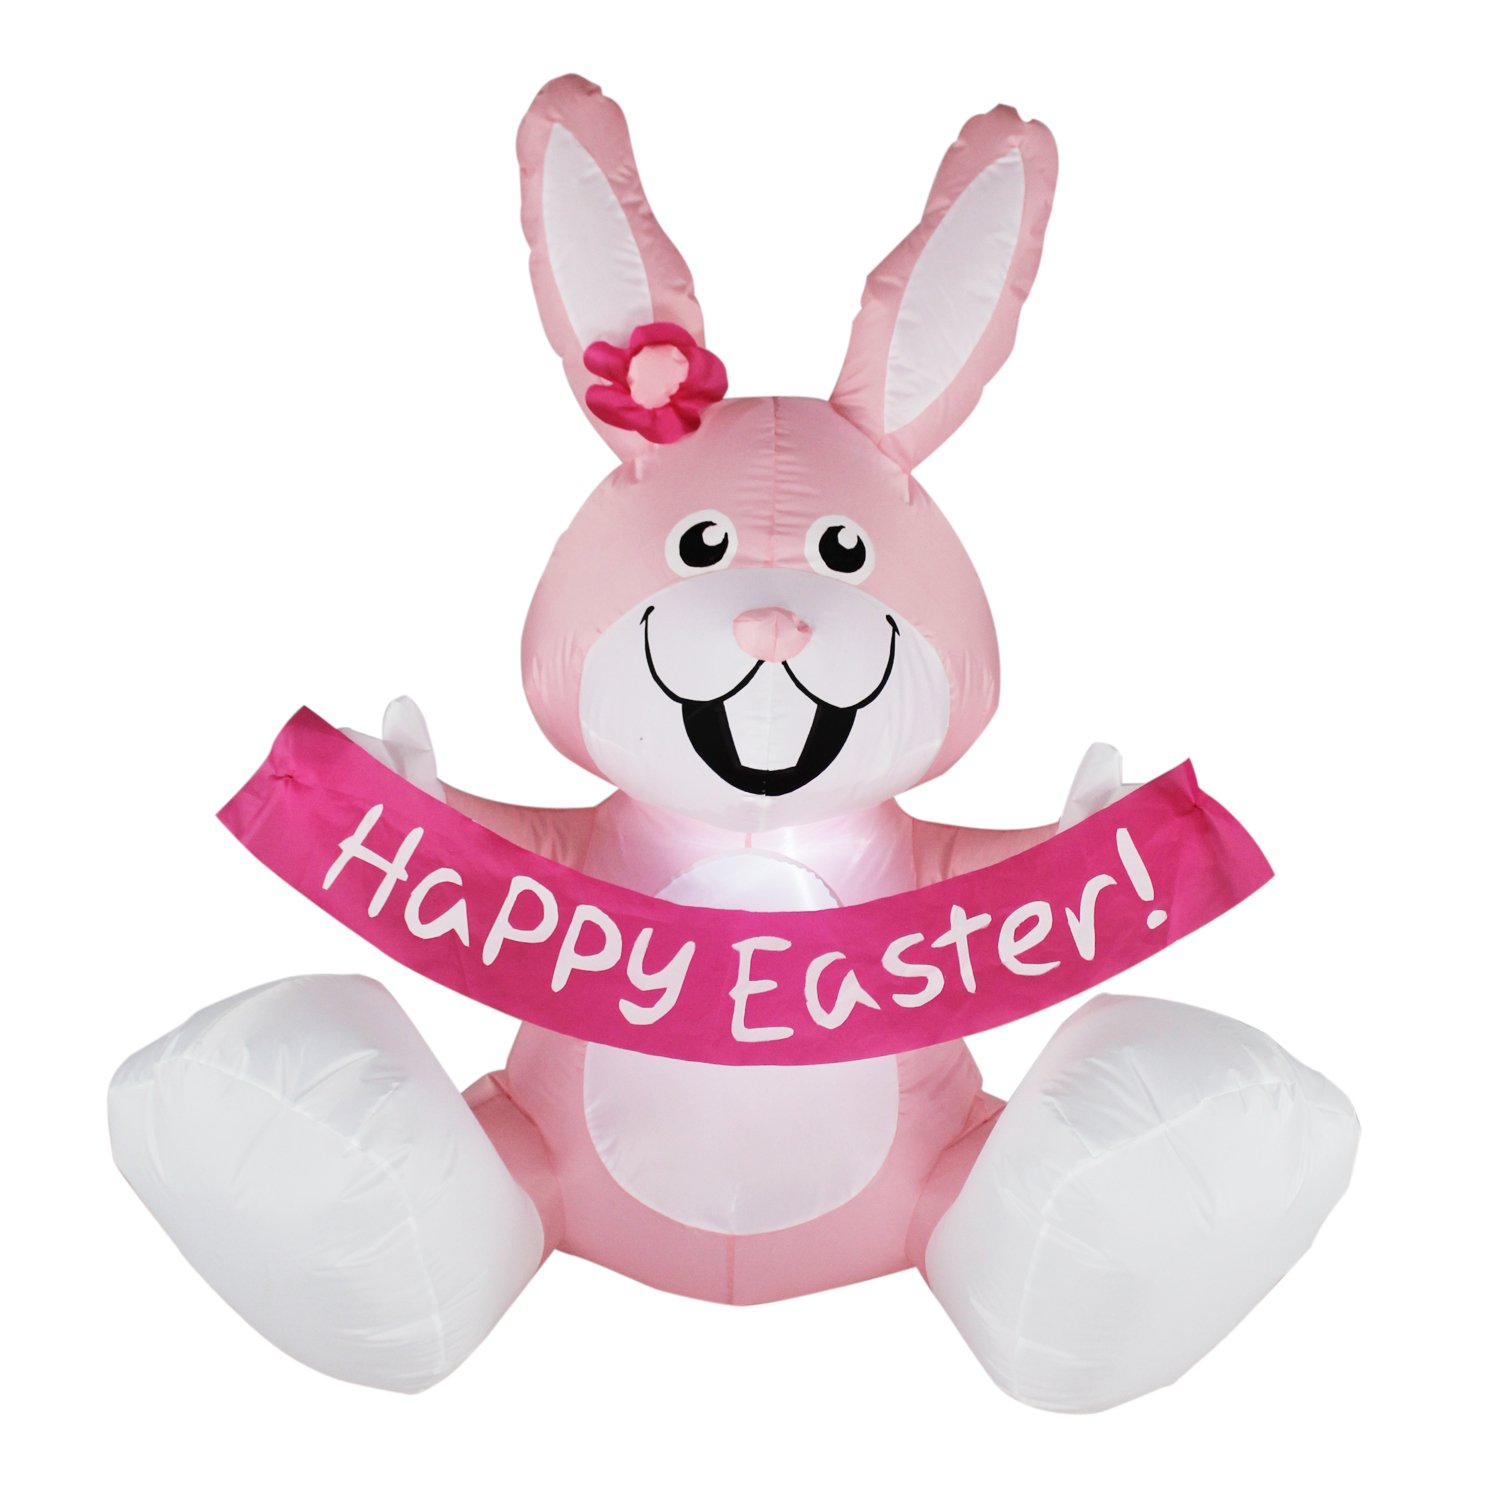 BIGJOYS SEASONBLOW 4 Ft Inflatable Happy Easter Rabbit Airblown LED Lighted Bunny Yard Indoor Outdoor Home Decoration Pink